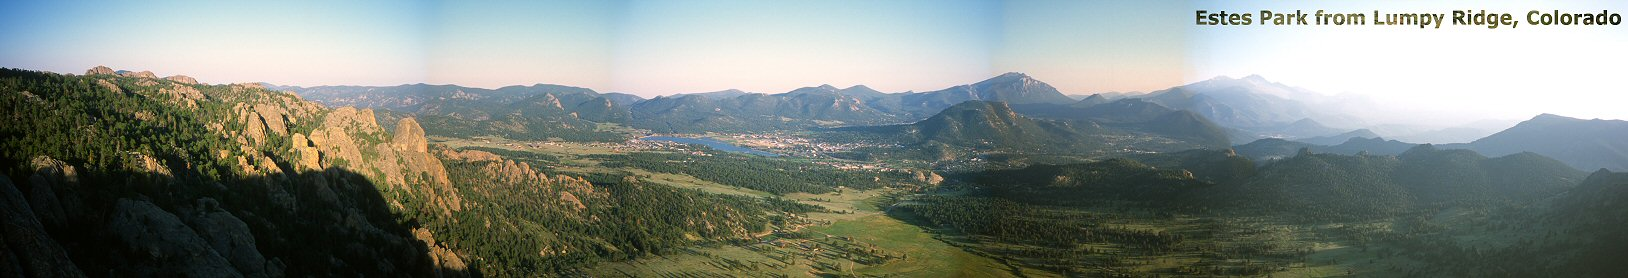 Panorama of Estes Park from Lumpy Ridge, 2003